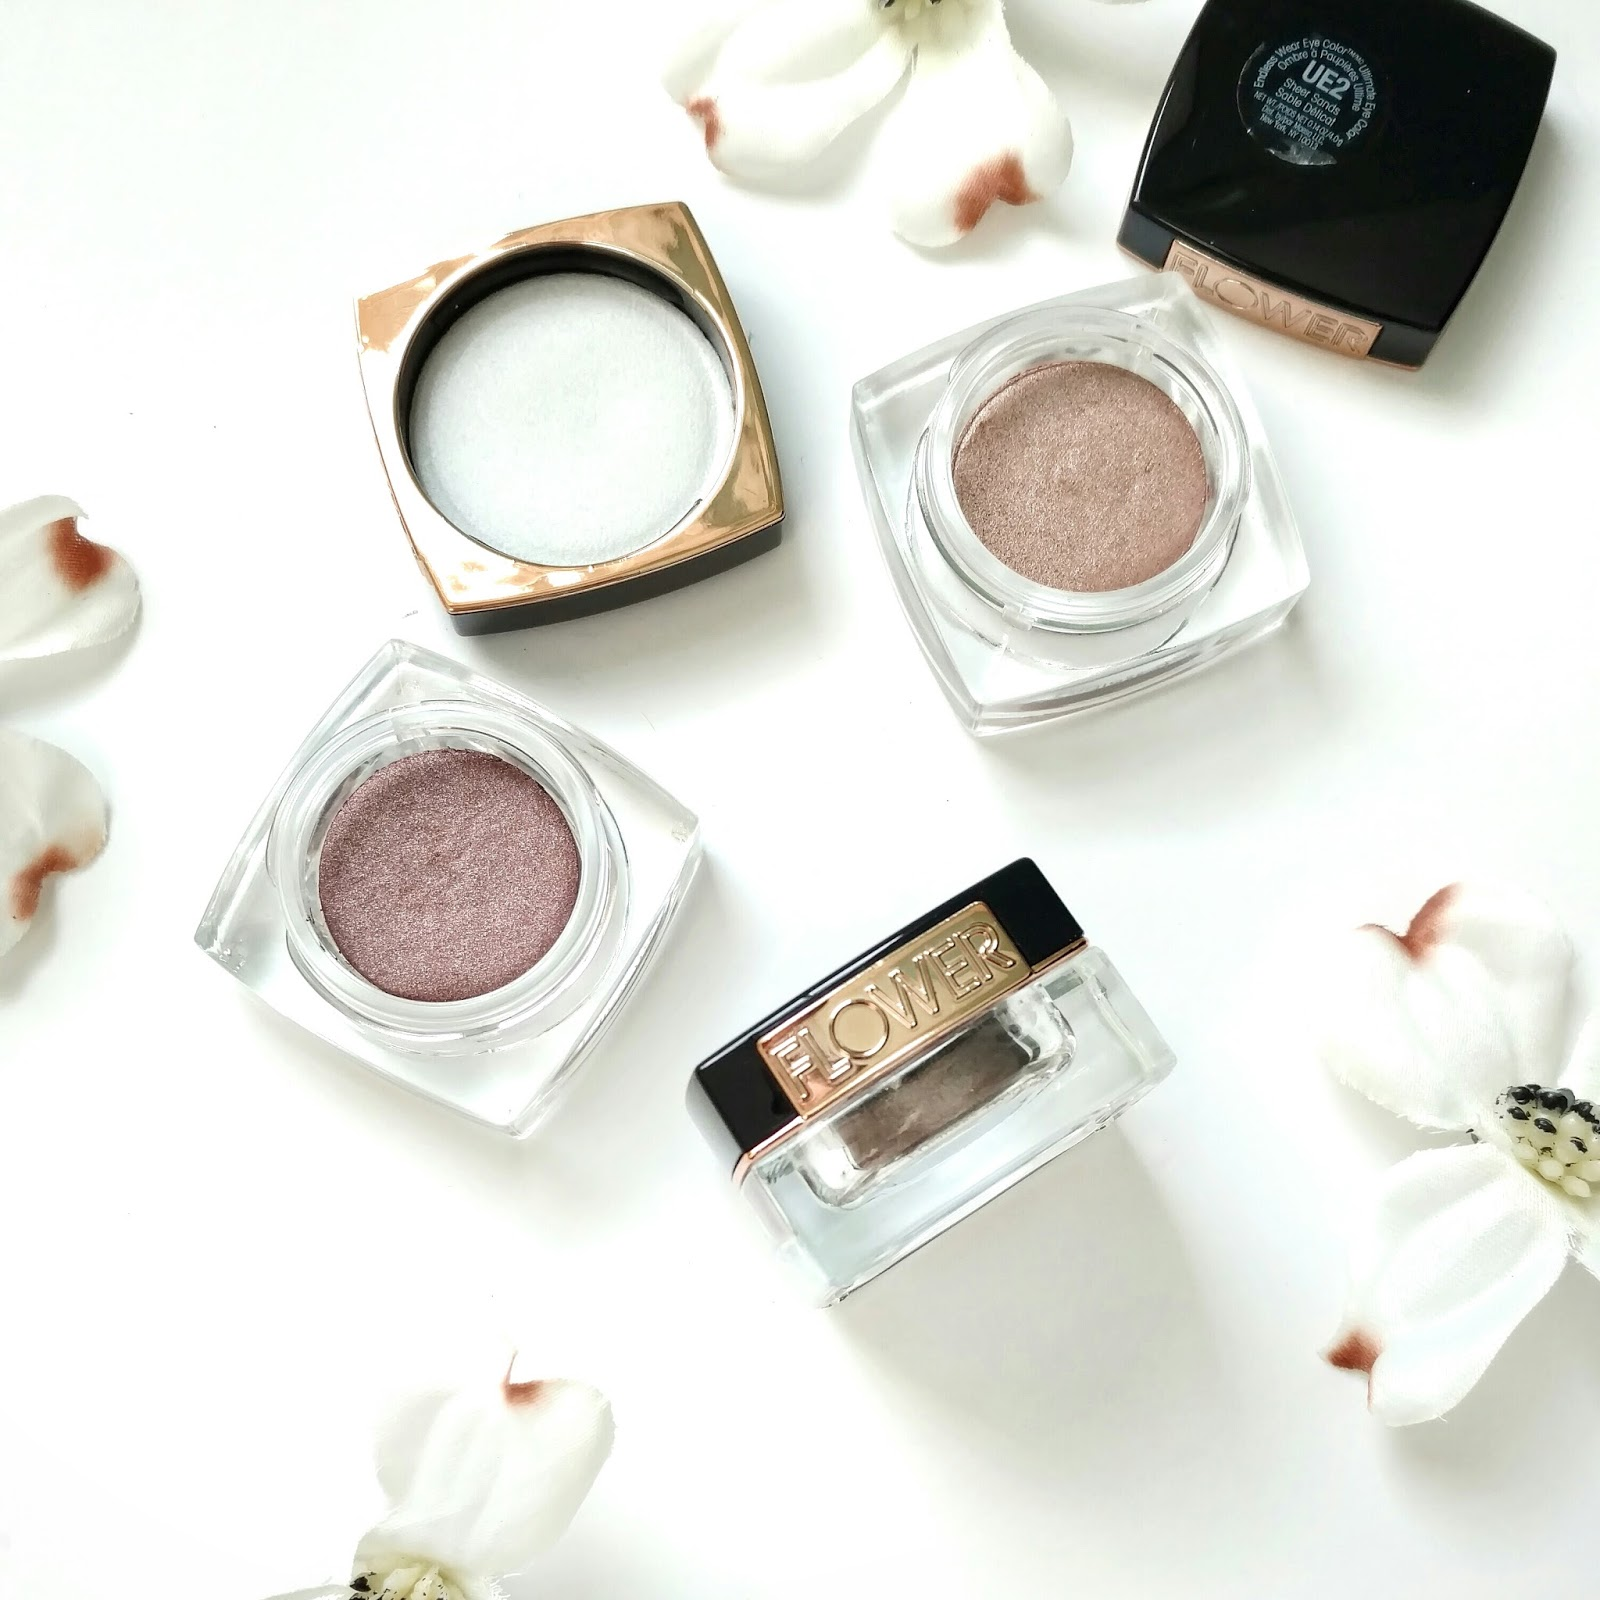 Flower beauty ultimate eye color review the budget beauty blog flower beauty ultimate eye color review izmirmasajfo